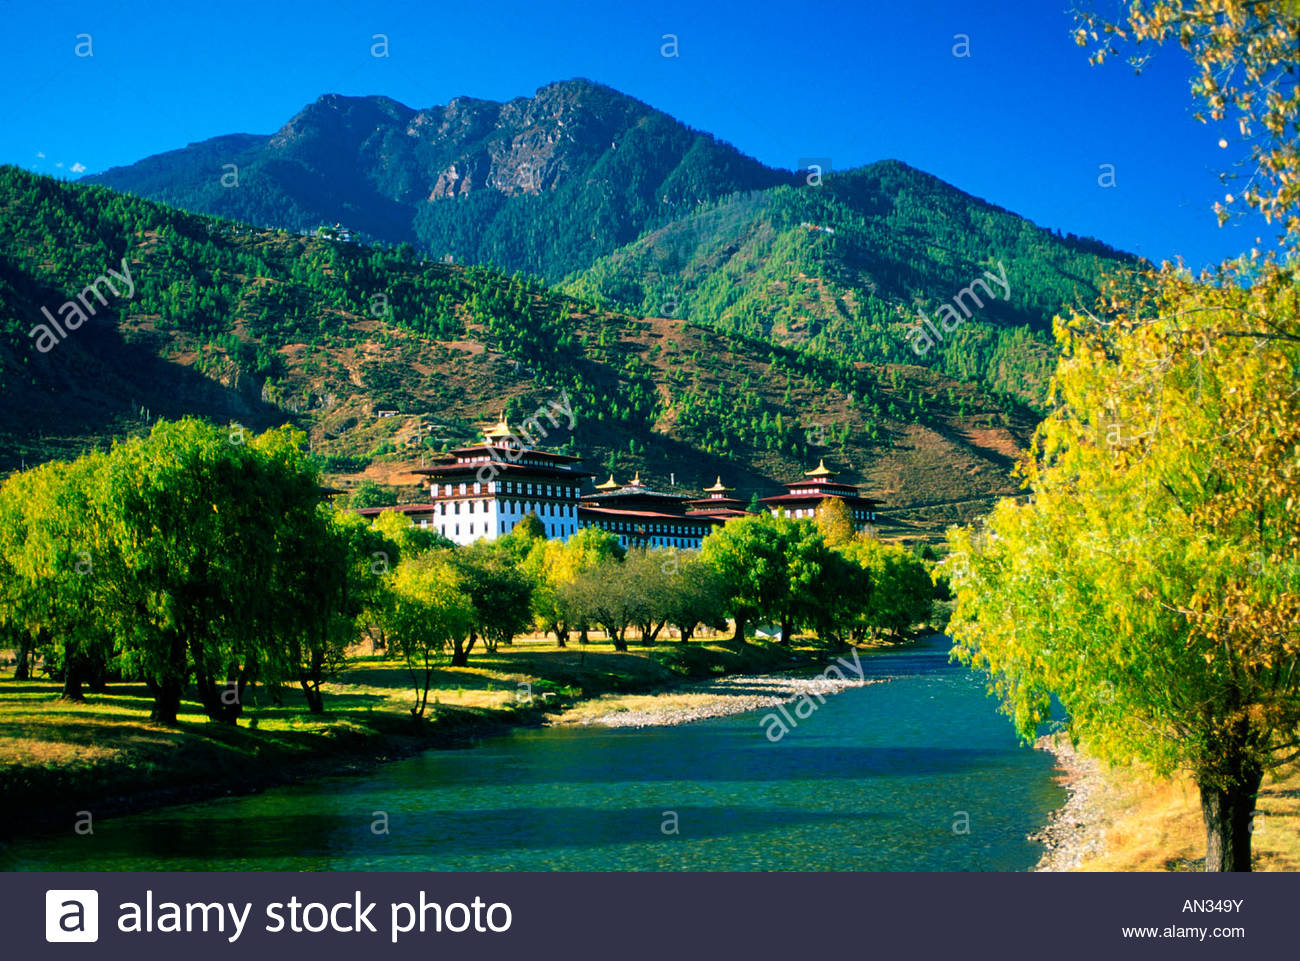 Tashi Chodzong siège du gouvernement central bhoutanais Photo Stock